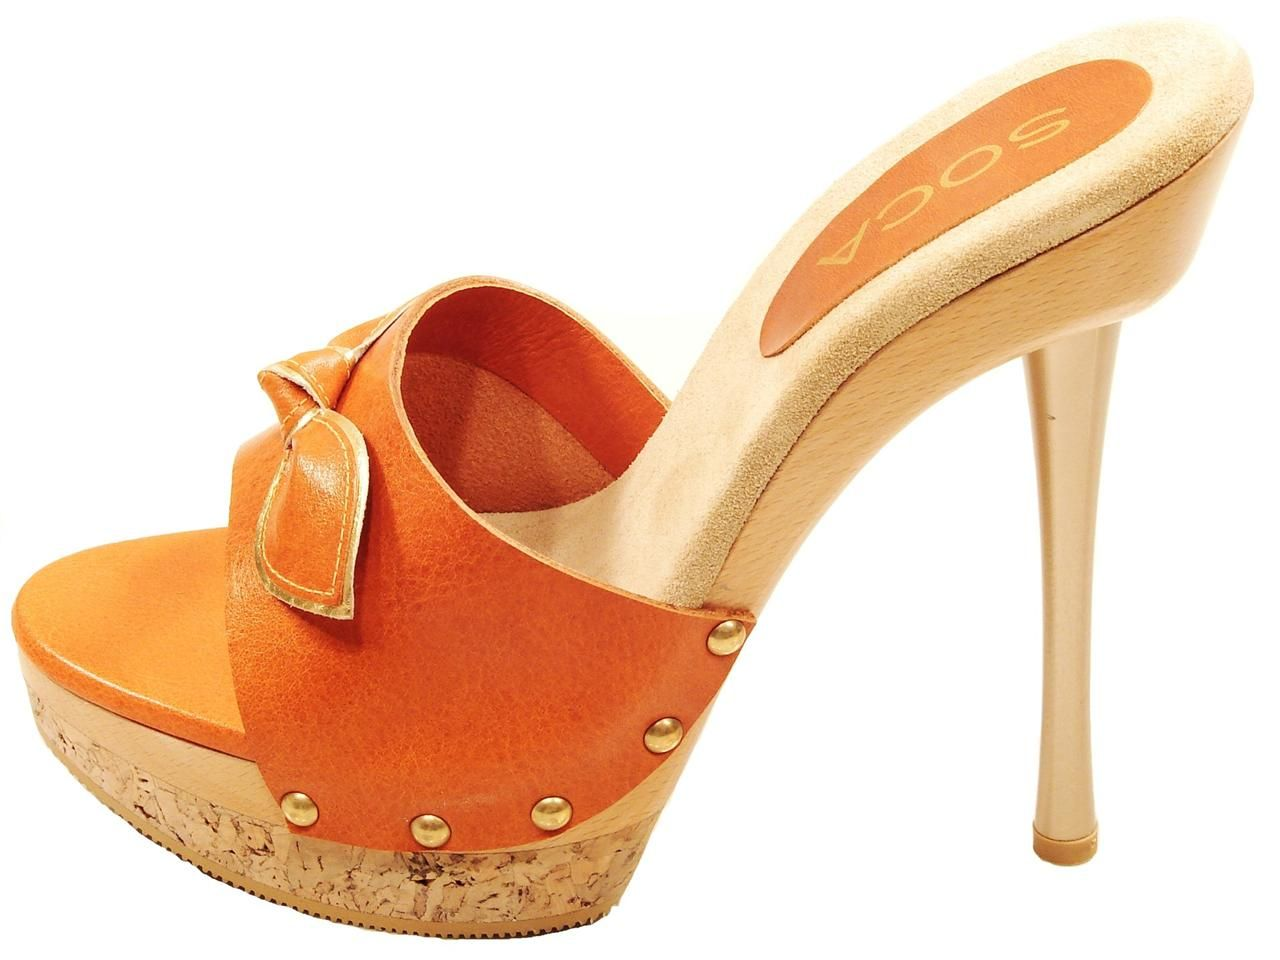 Details about WOMENS SOCA ELSA HIGH HEEL WOOD CORK PLATFORM SLIDES ...